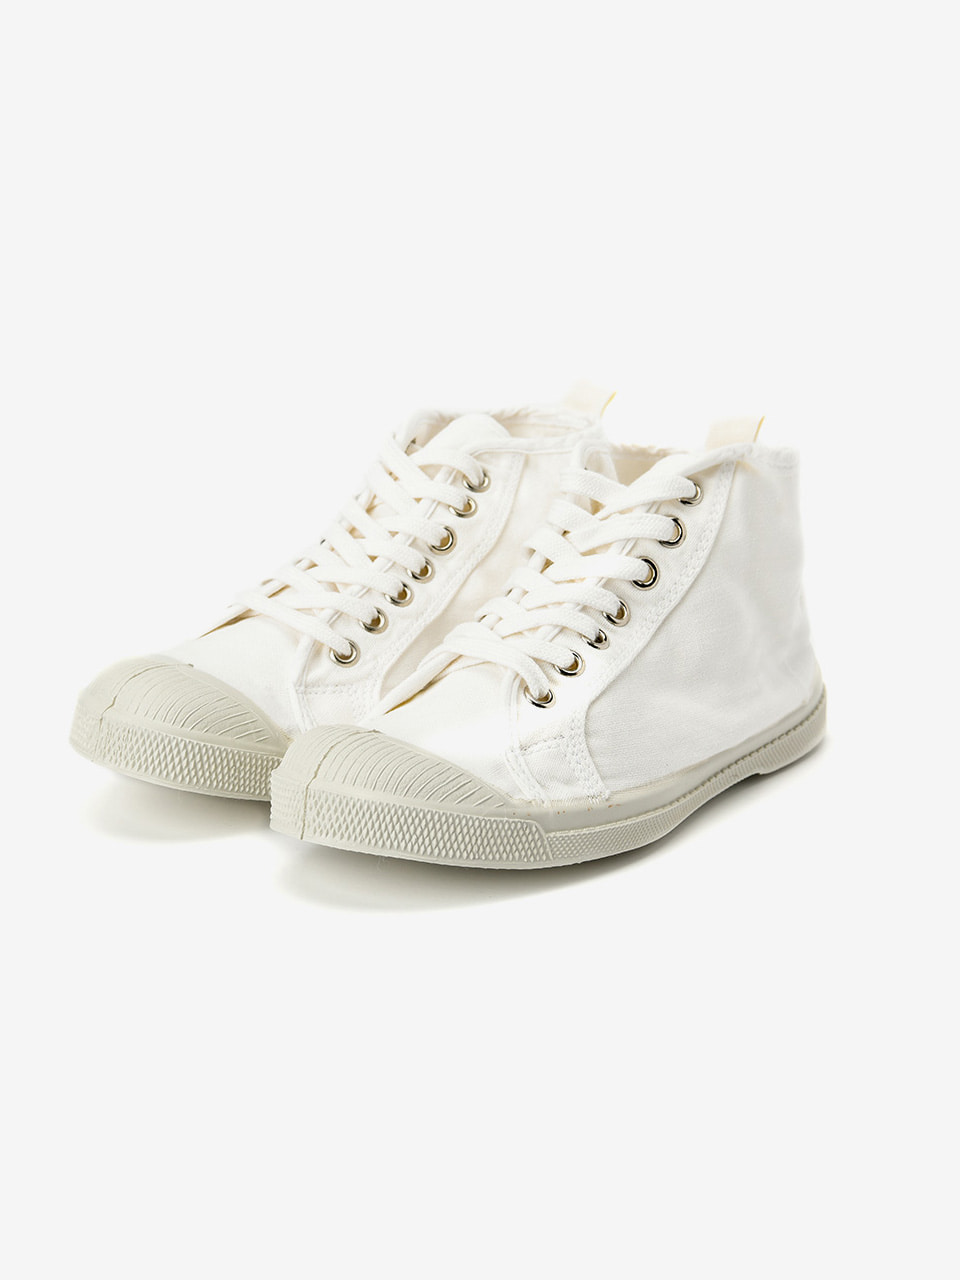 [Unisex Stella] White BS0SSO113WH/BS0SSO163WH